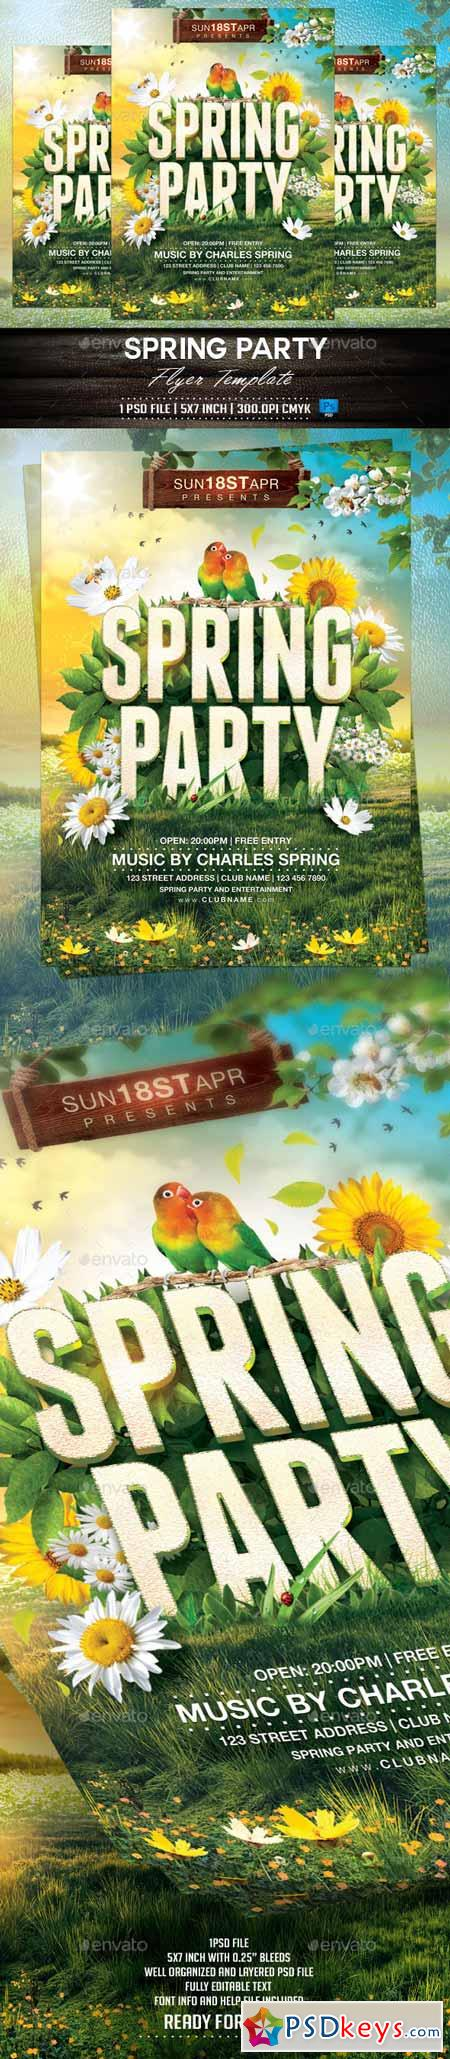 Spring Party Flyer Template 10489214 Free Download Photoshop – Spring Party Flyer